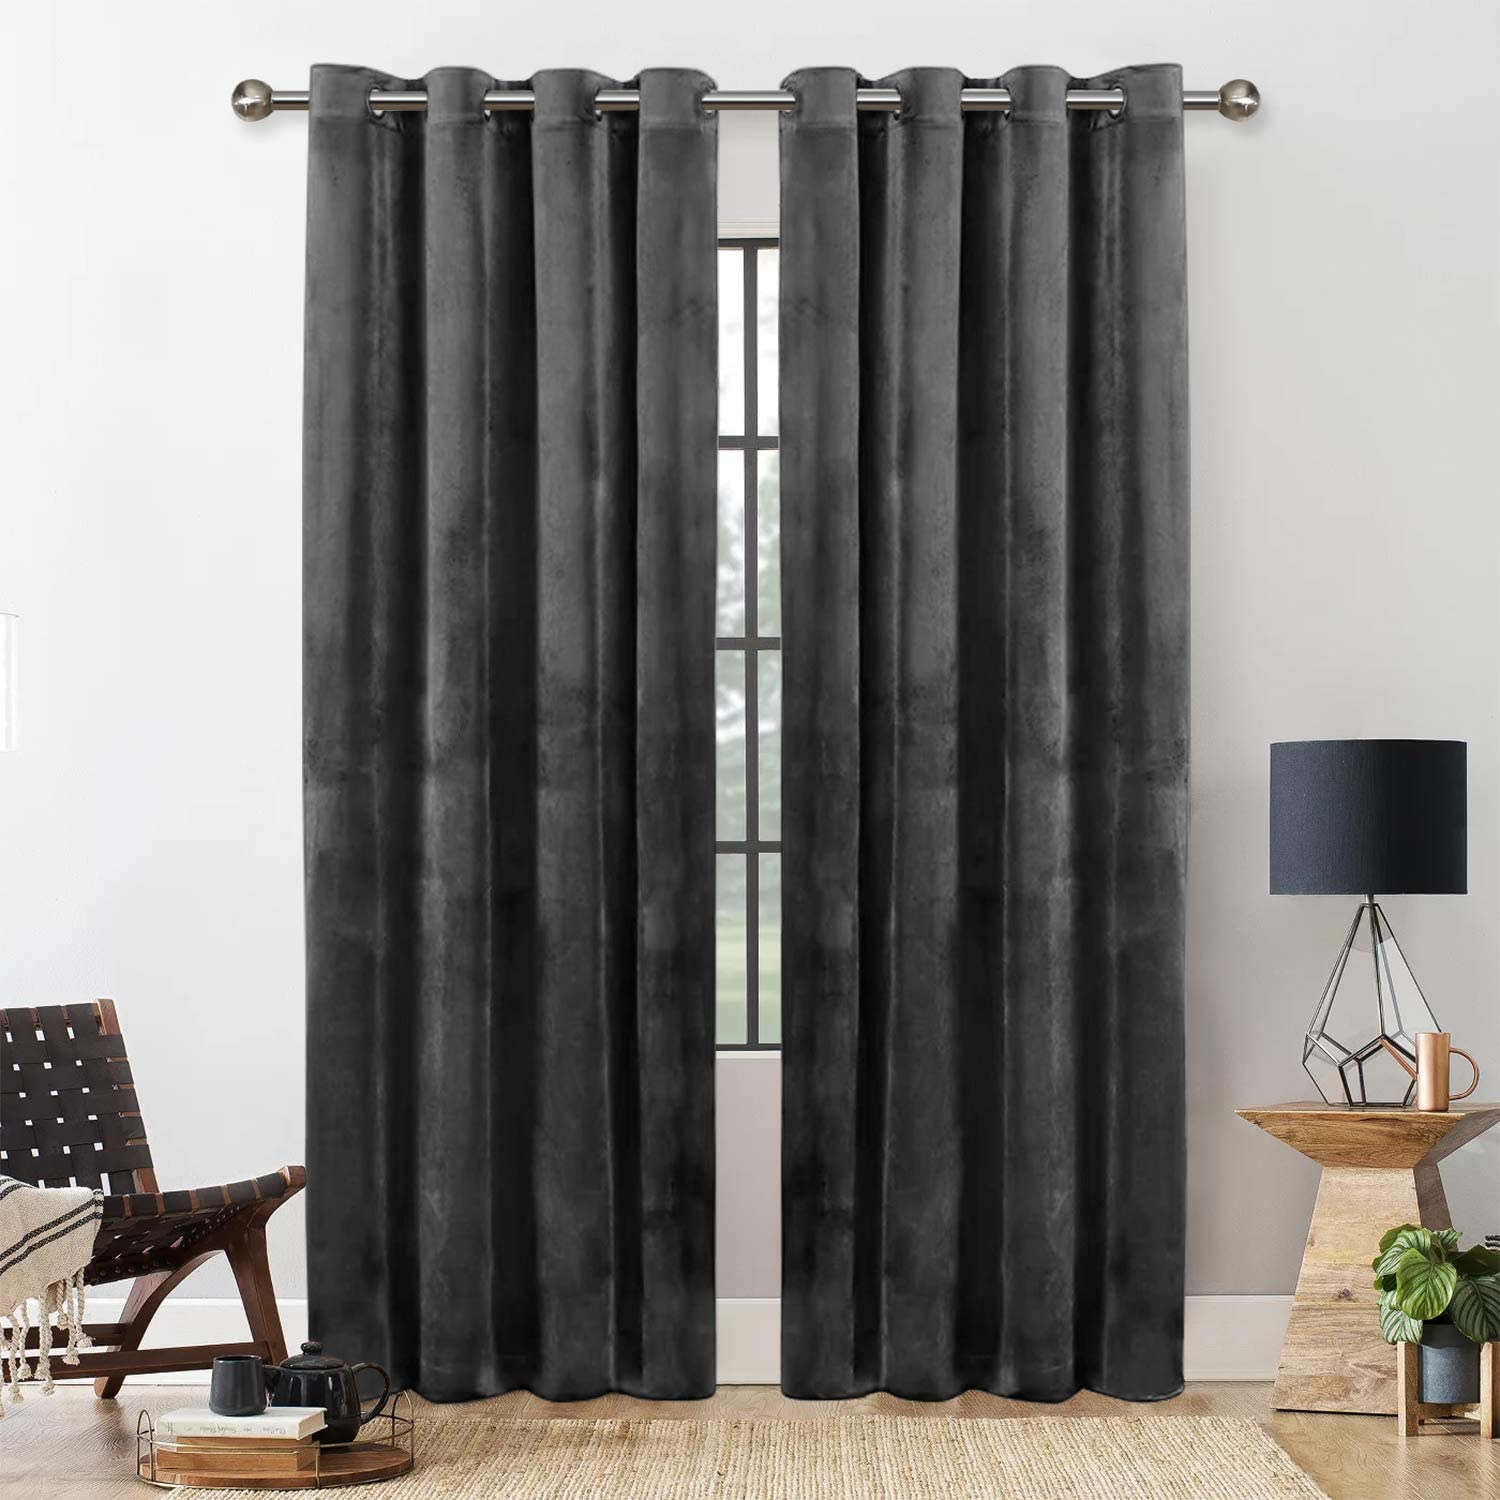 Yorkshire Bedding Blackout Curtains Room Darkening Eyelet Crushed Velvet Curtains For Living Room Pair Panels Fully Lined Window Curtains + Tie Backs (Grey, 46″ x 54″ (116cm x 137cm)) Grey 46″ x 54″ (116cm x 137cm)